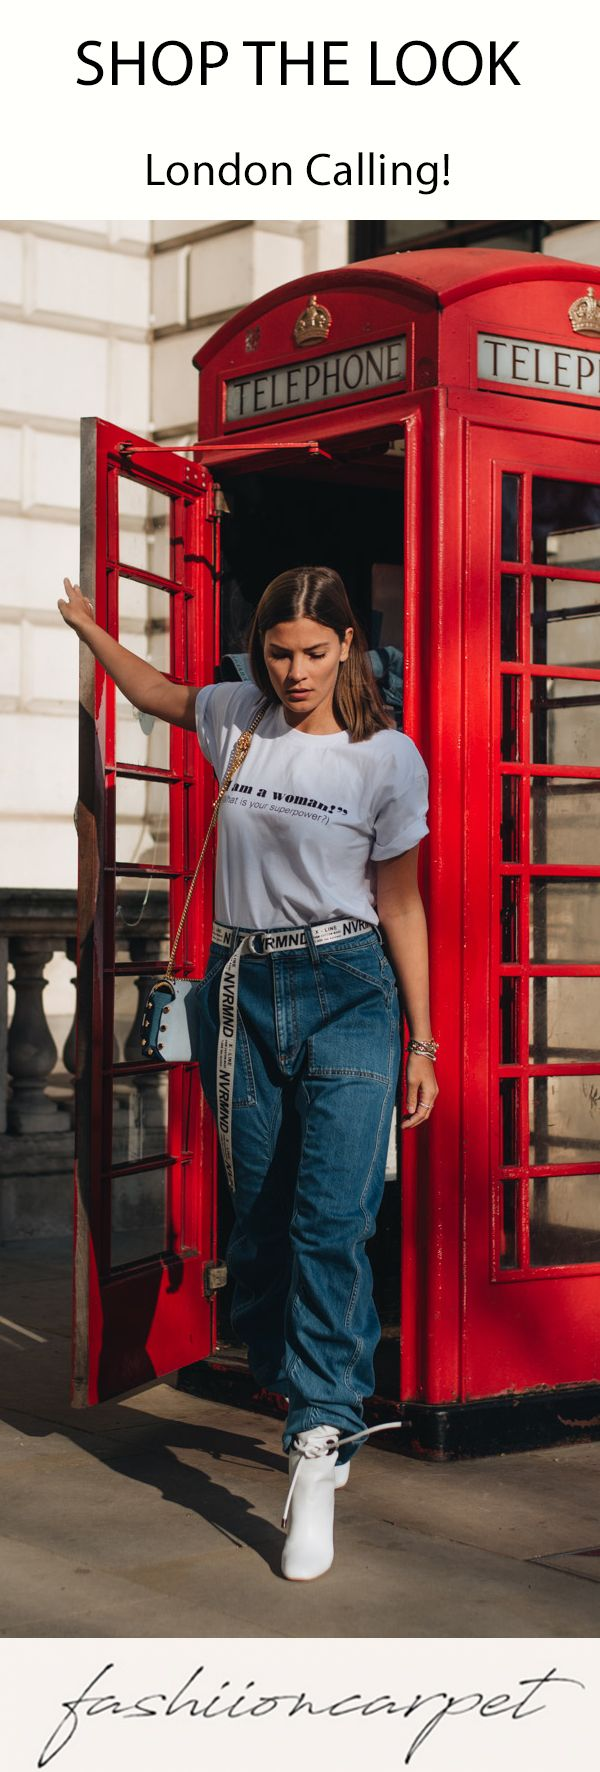 84 best Caro Daur. images on Pinterest   Street styles, Clothing and ...